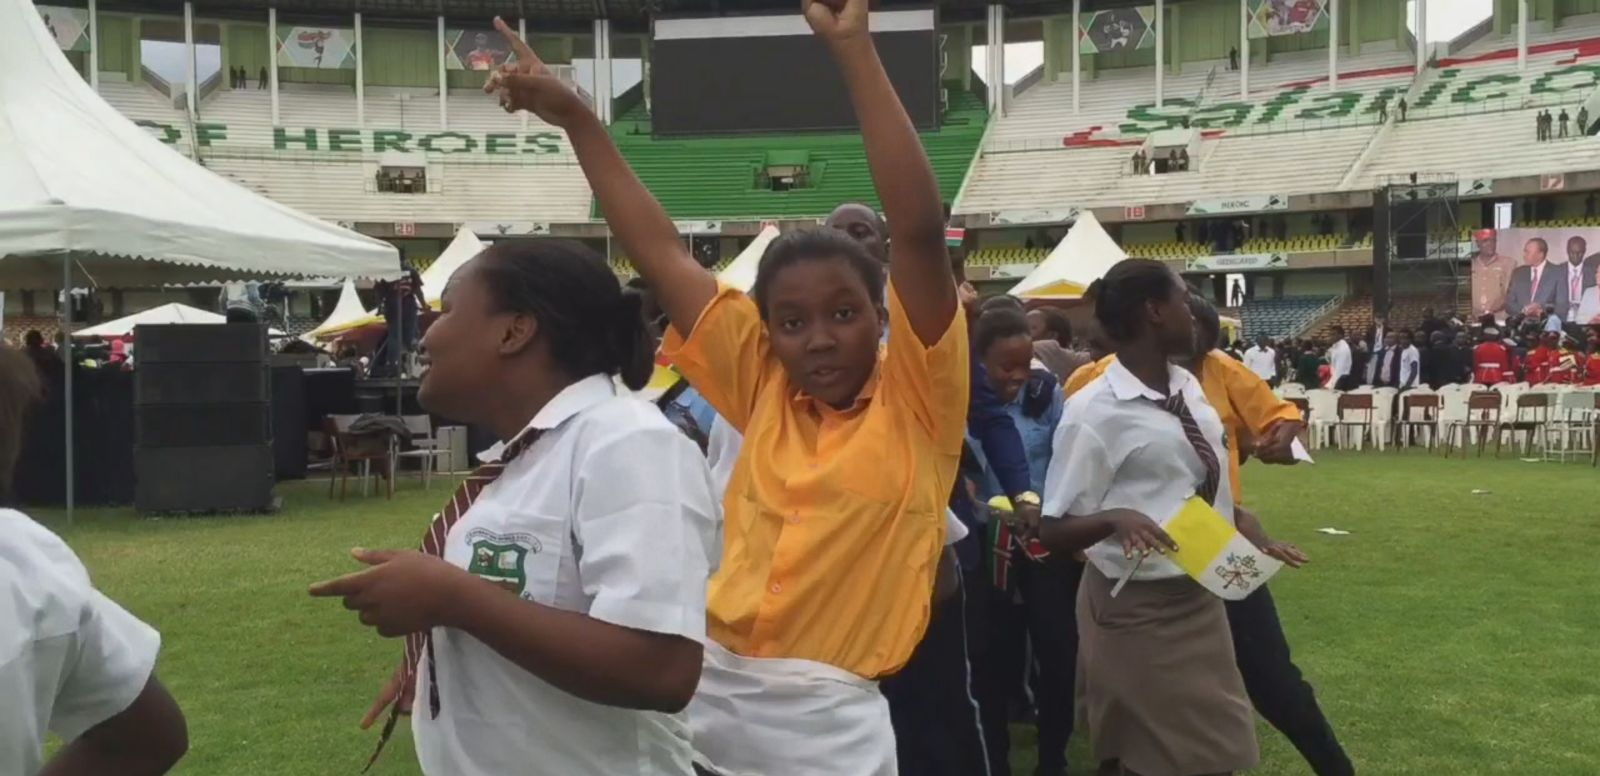 VIDEO: Thousands of excited Catholic school kids filled Kasarani Stadium in Kenya's capital city.